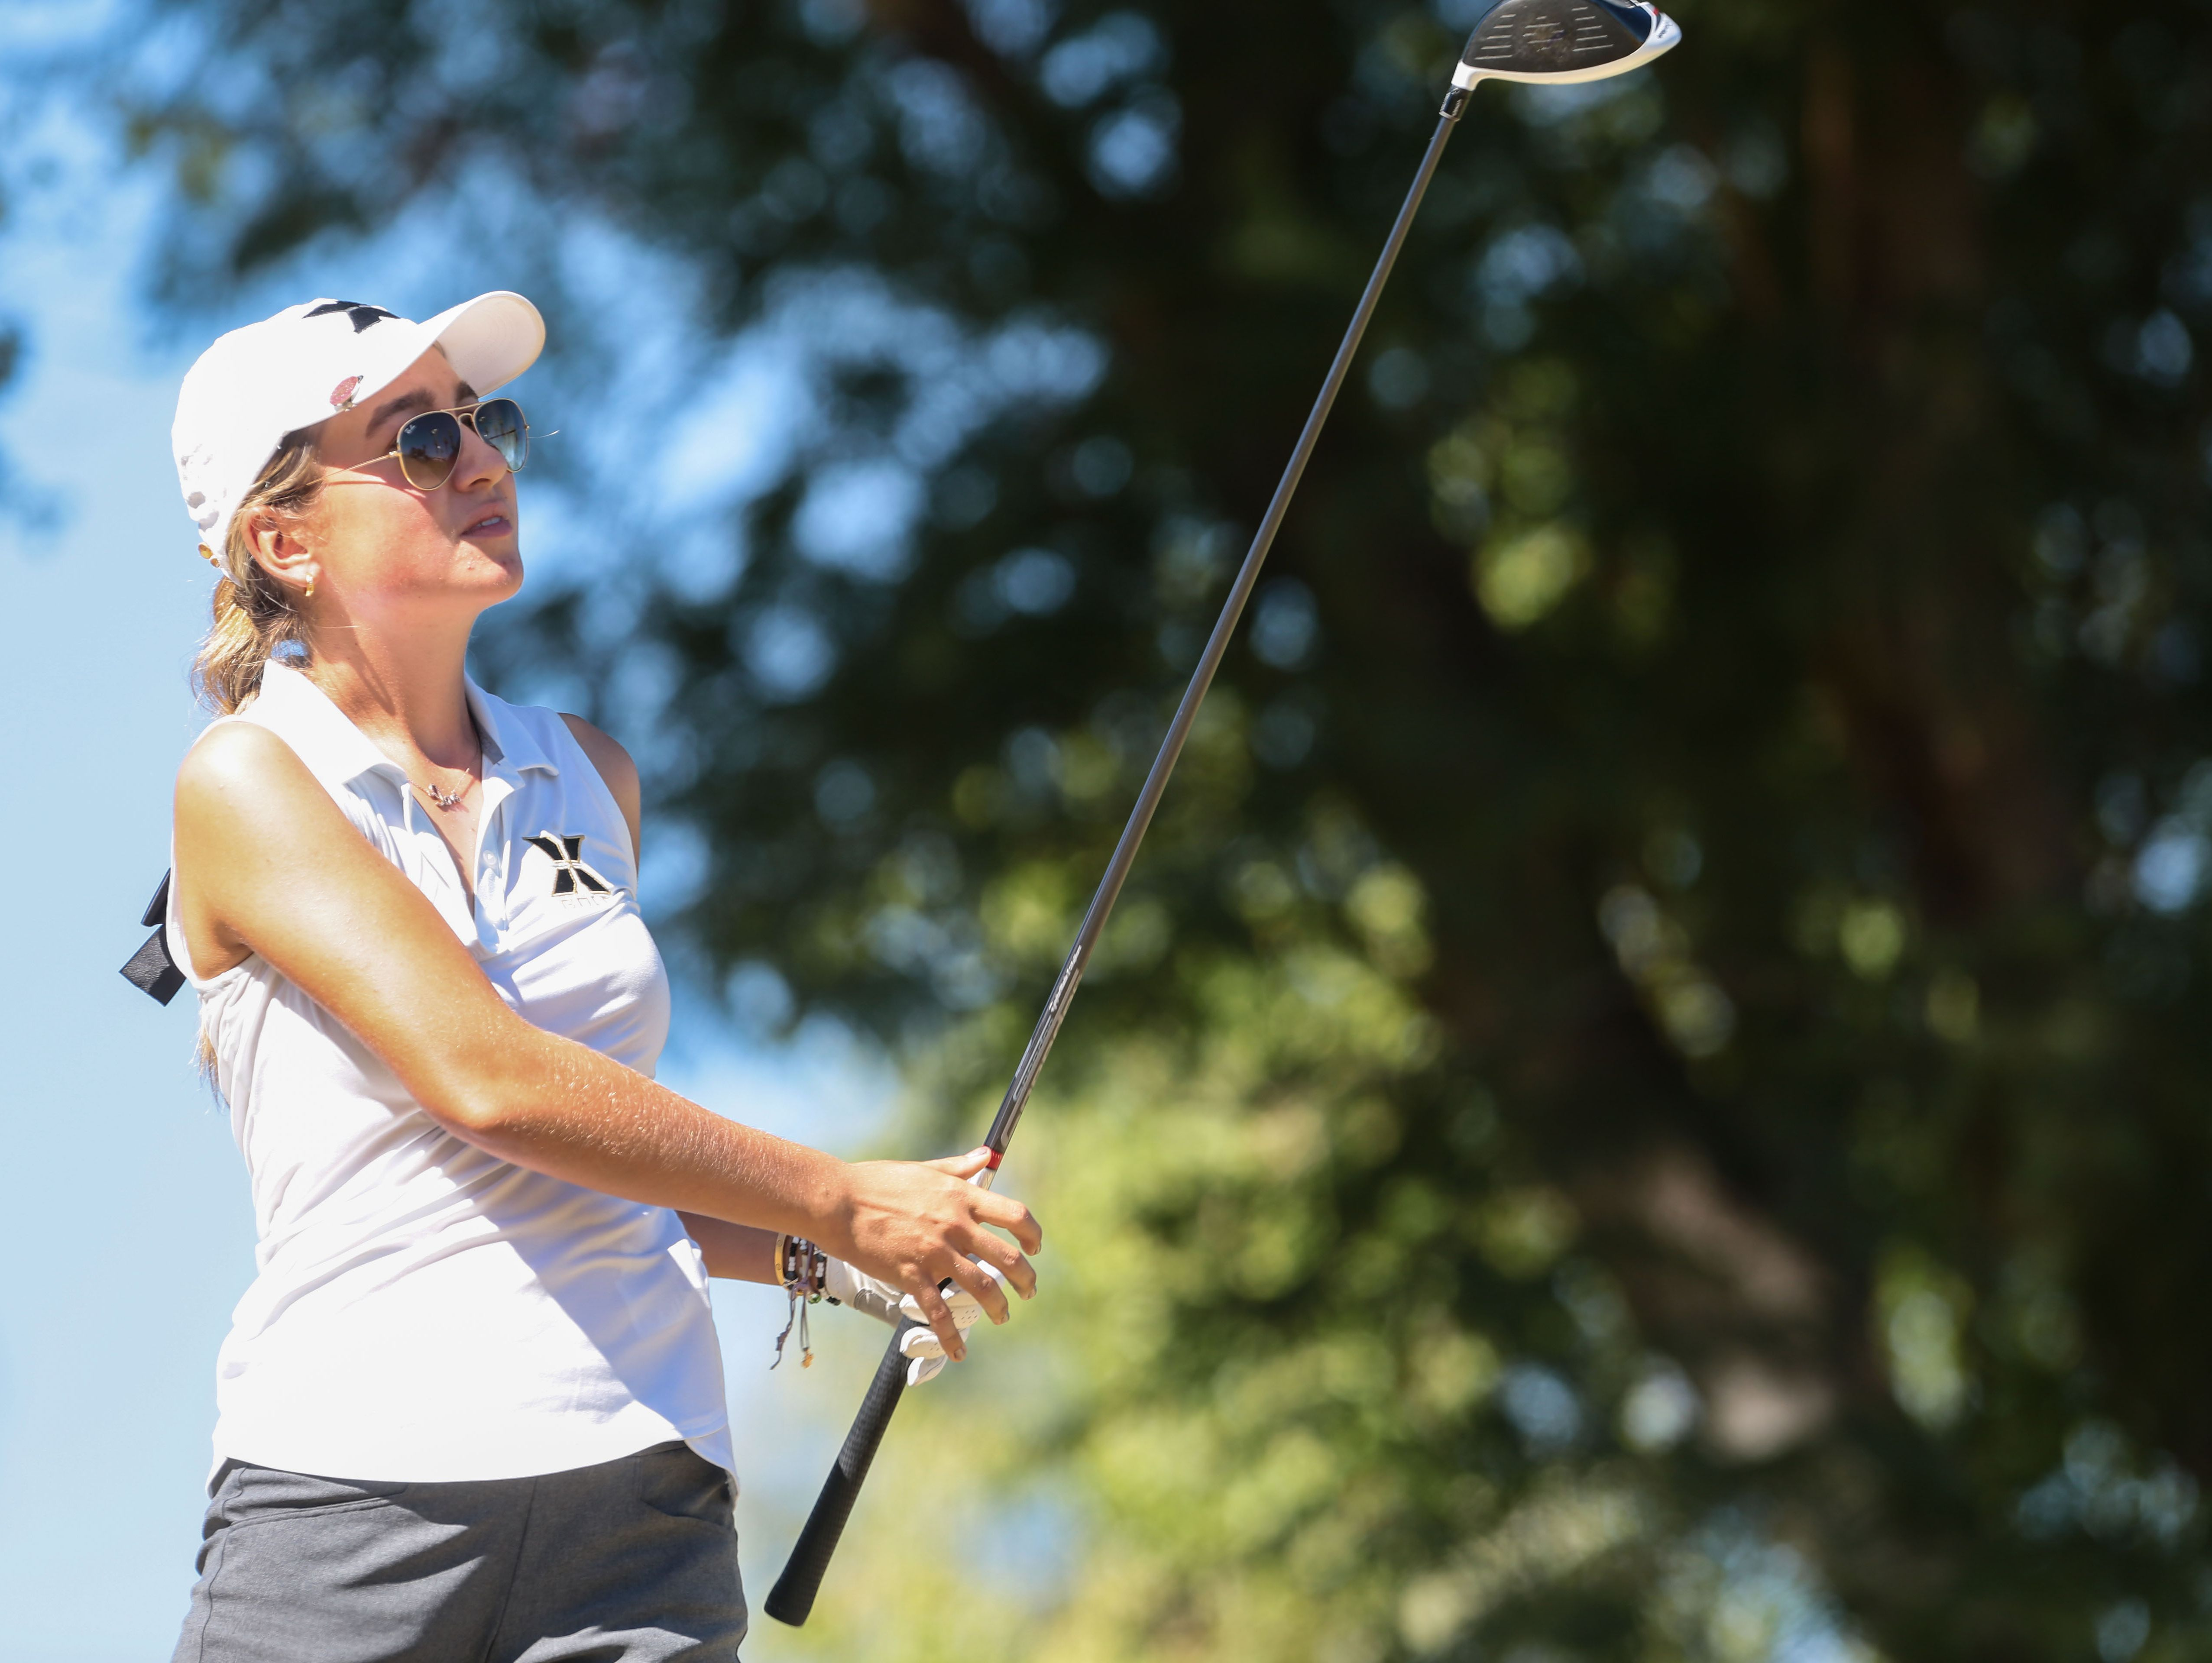 Xavier Prep's Vera Markevich tees off on the 10th hole during the Desert Valley League girls' golf individual finals on Thursday, October 20, 2016 at the JW Marriott Desert Springs Resort in Palm Desert.